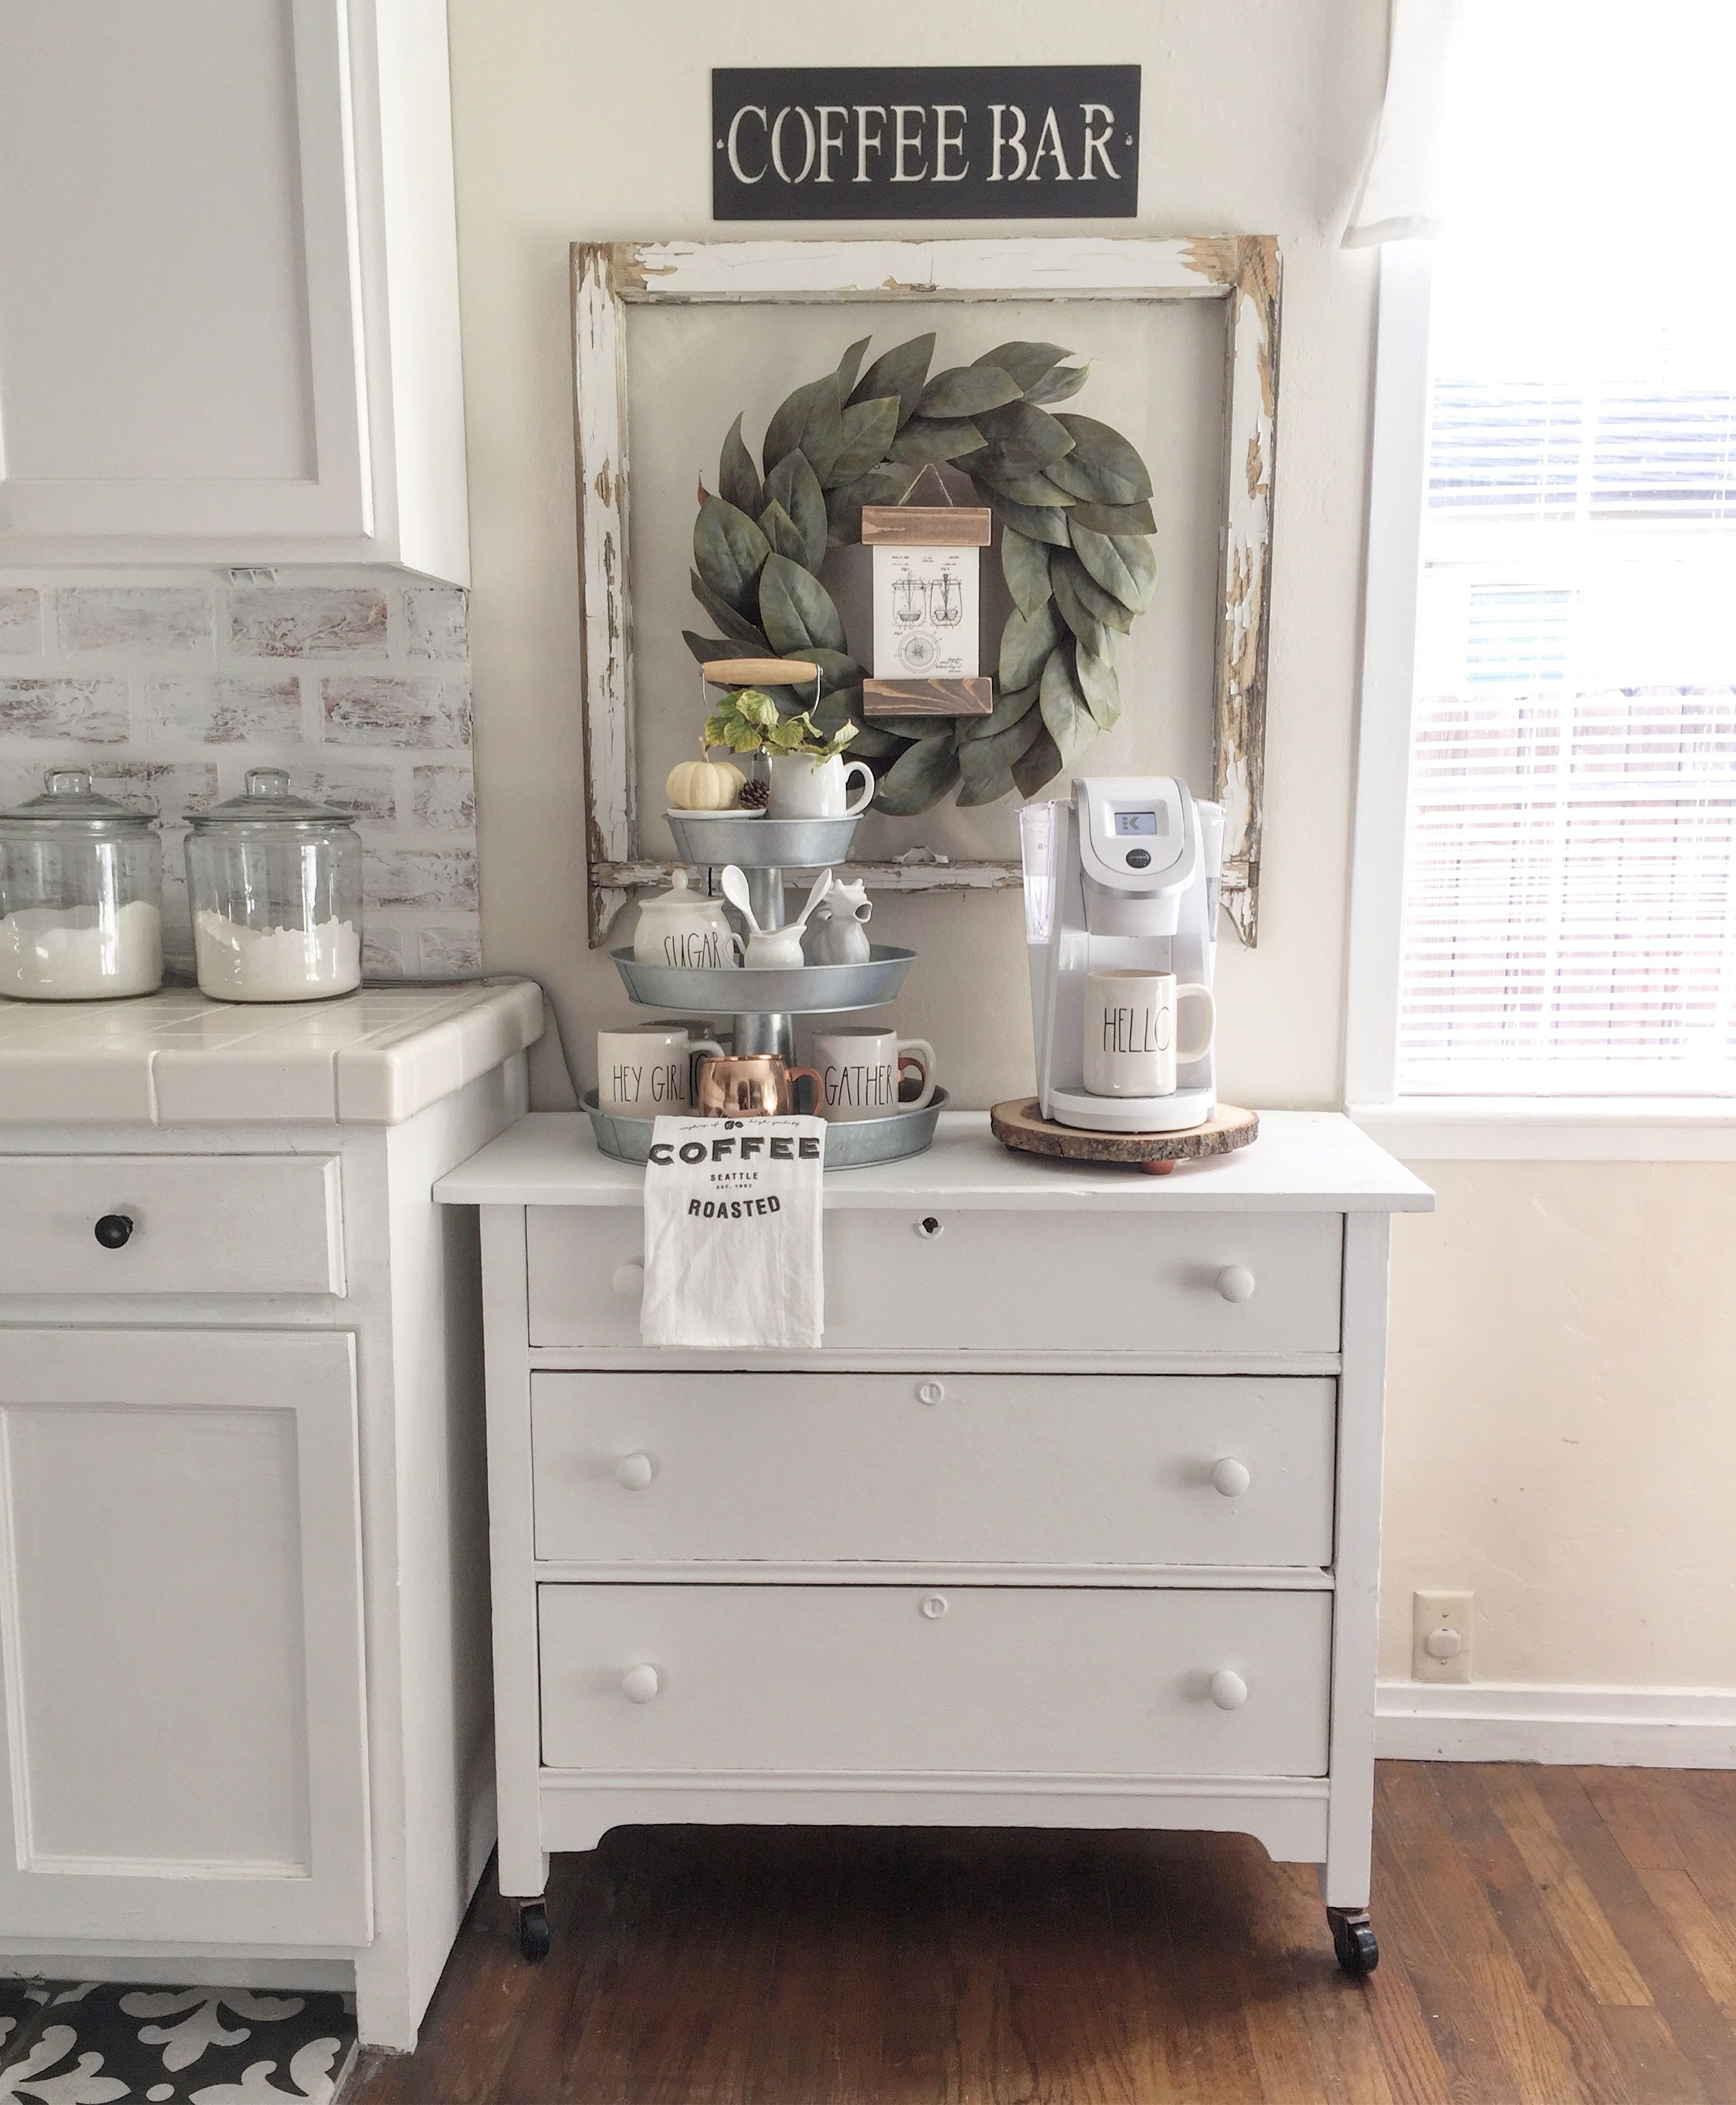 Home Coffee Bar Design Ideas: Coffee Bar, But With Dresser Painted In Antiqued Black Fox